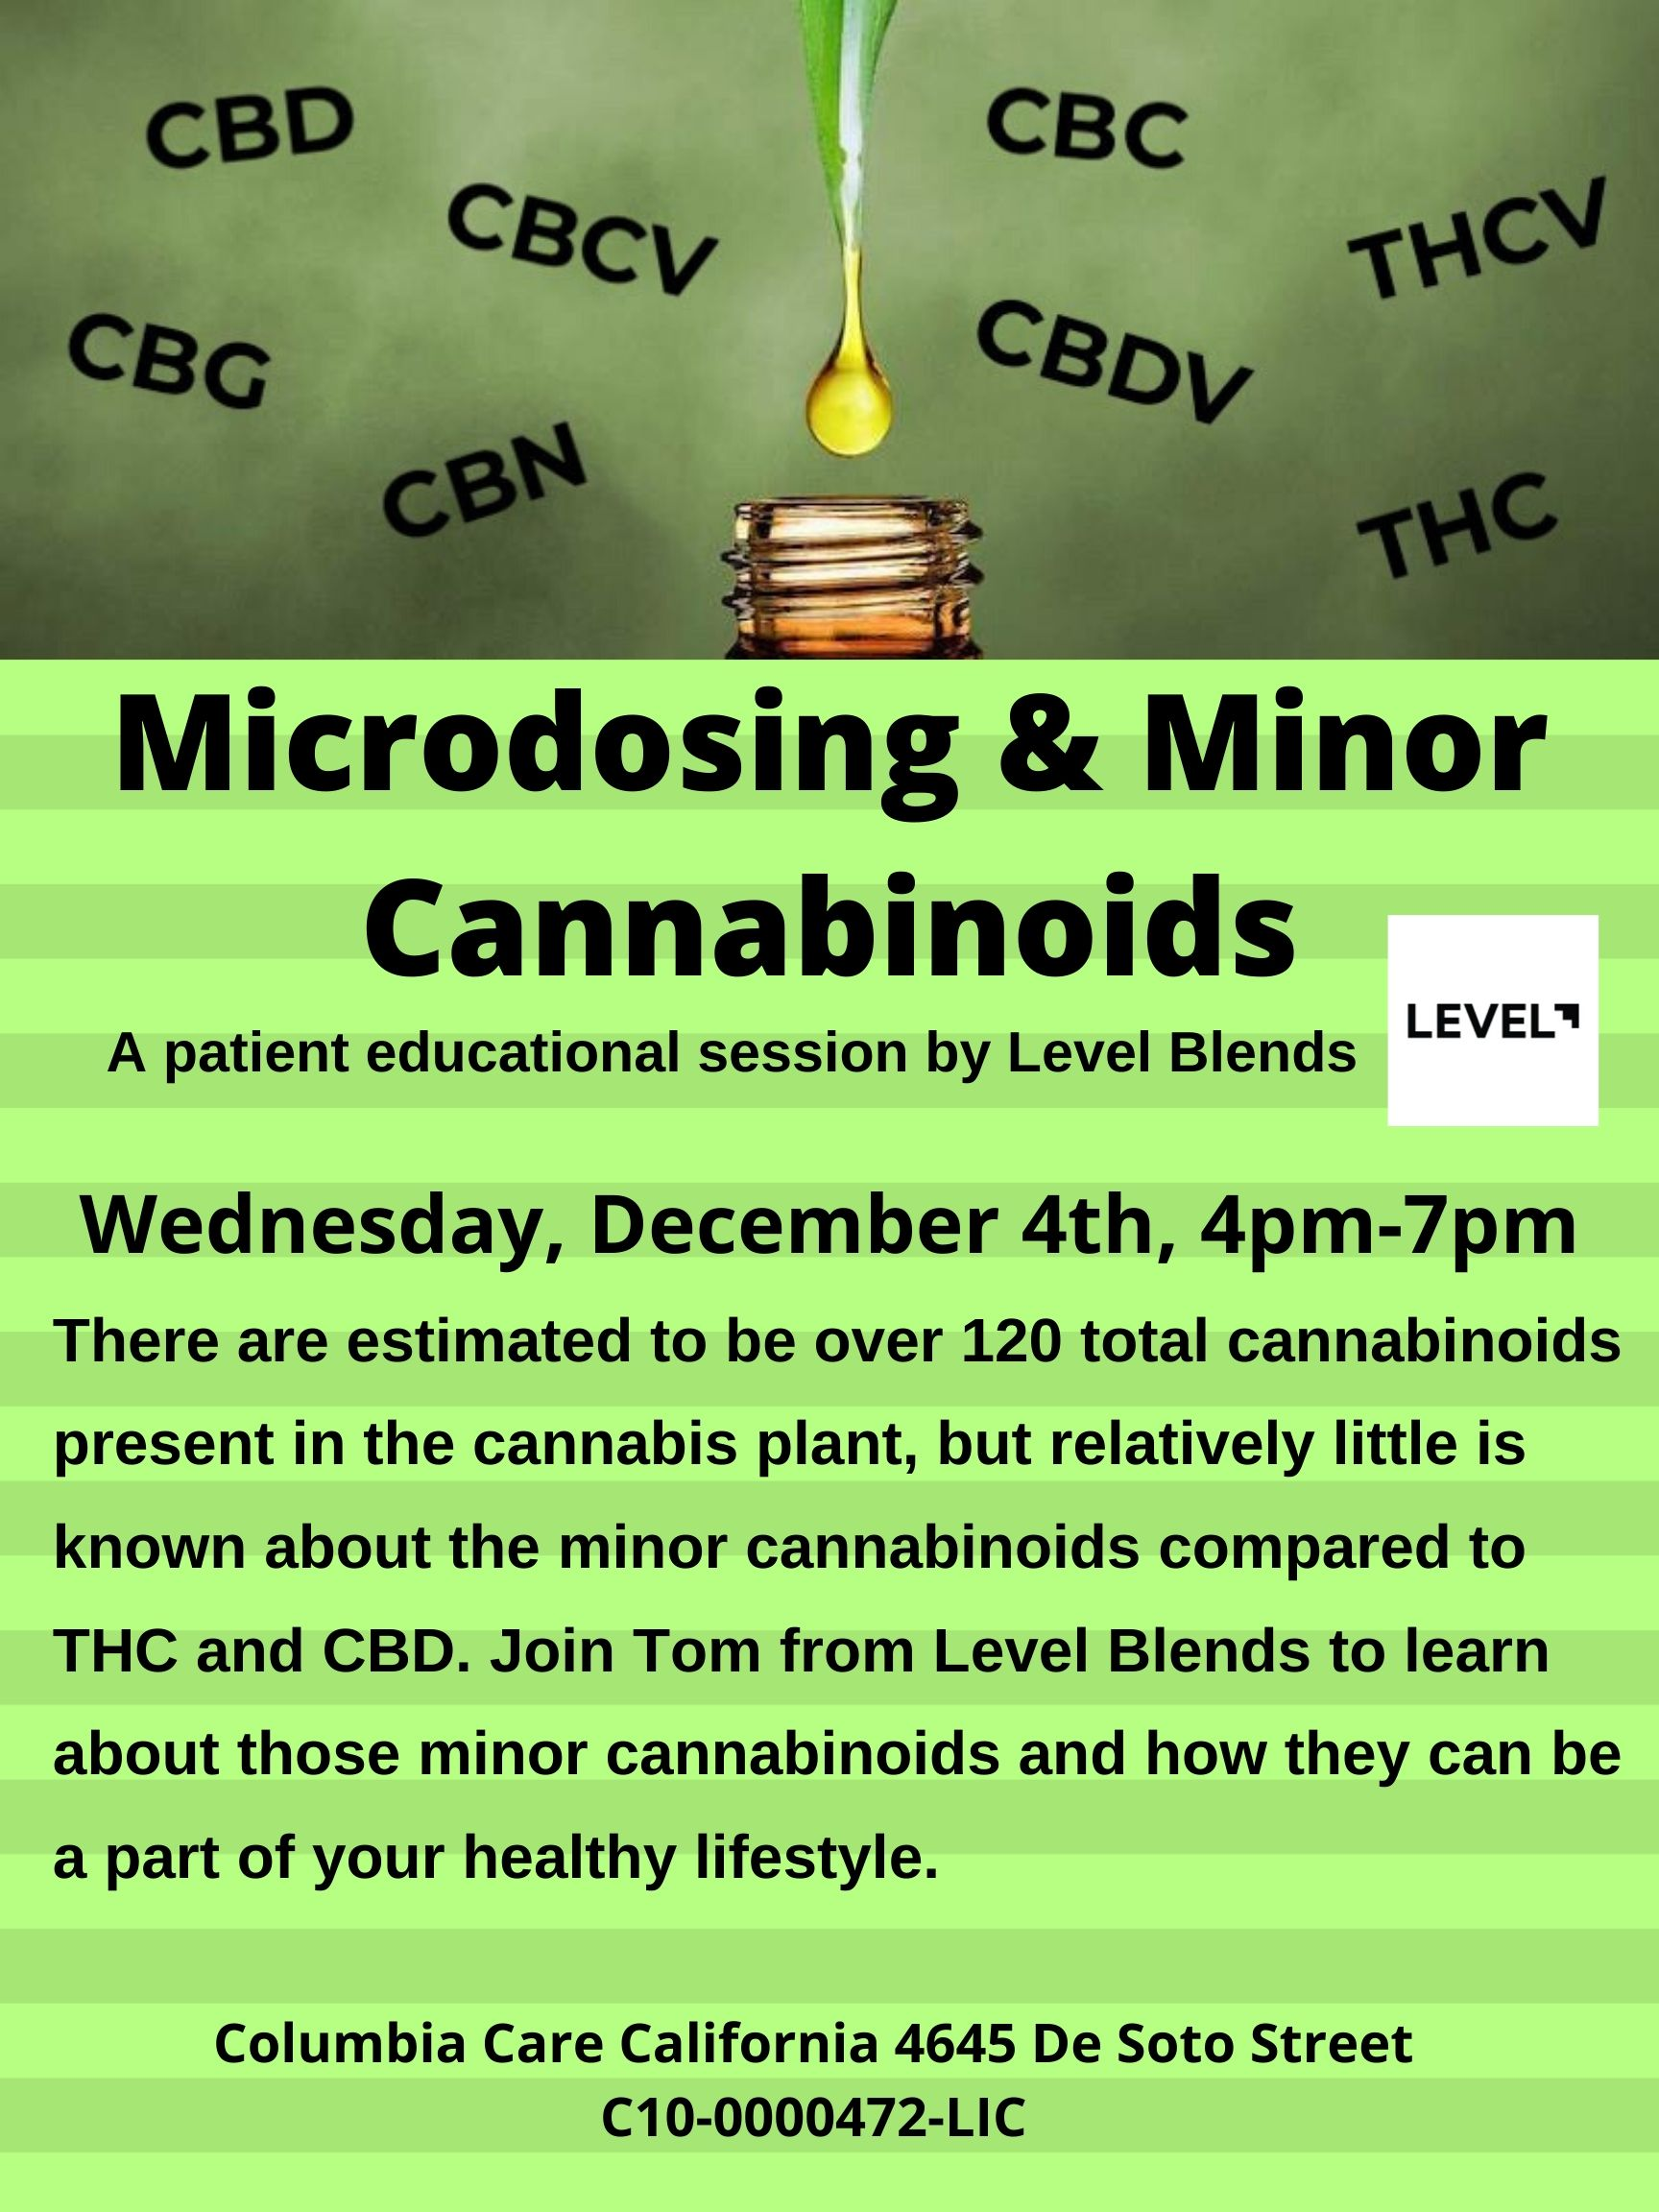 Microdosing and Minor Cannabinoids